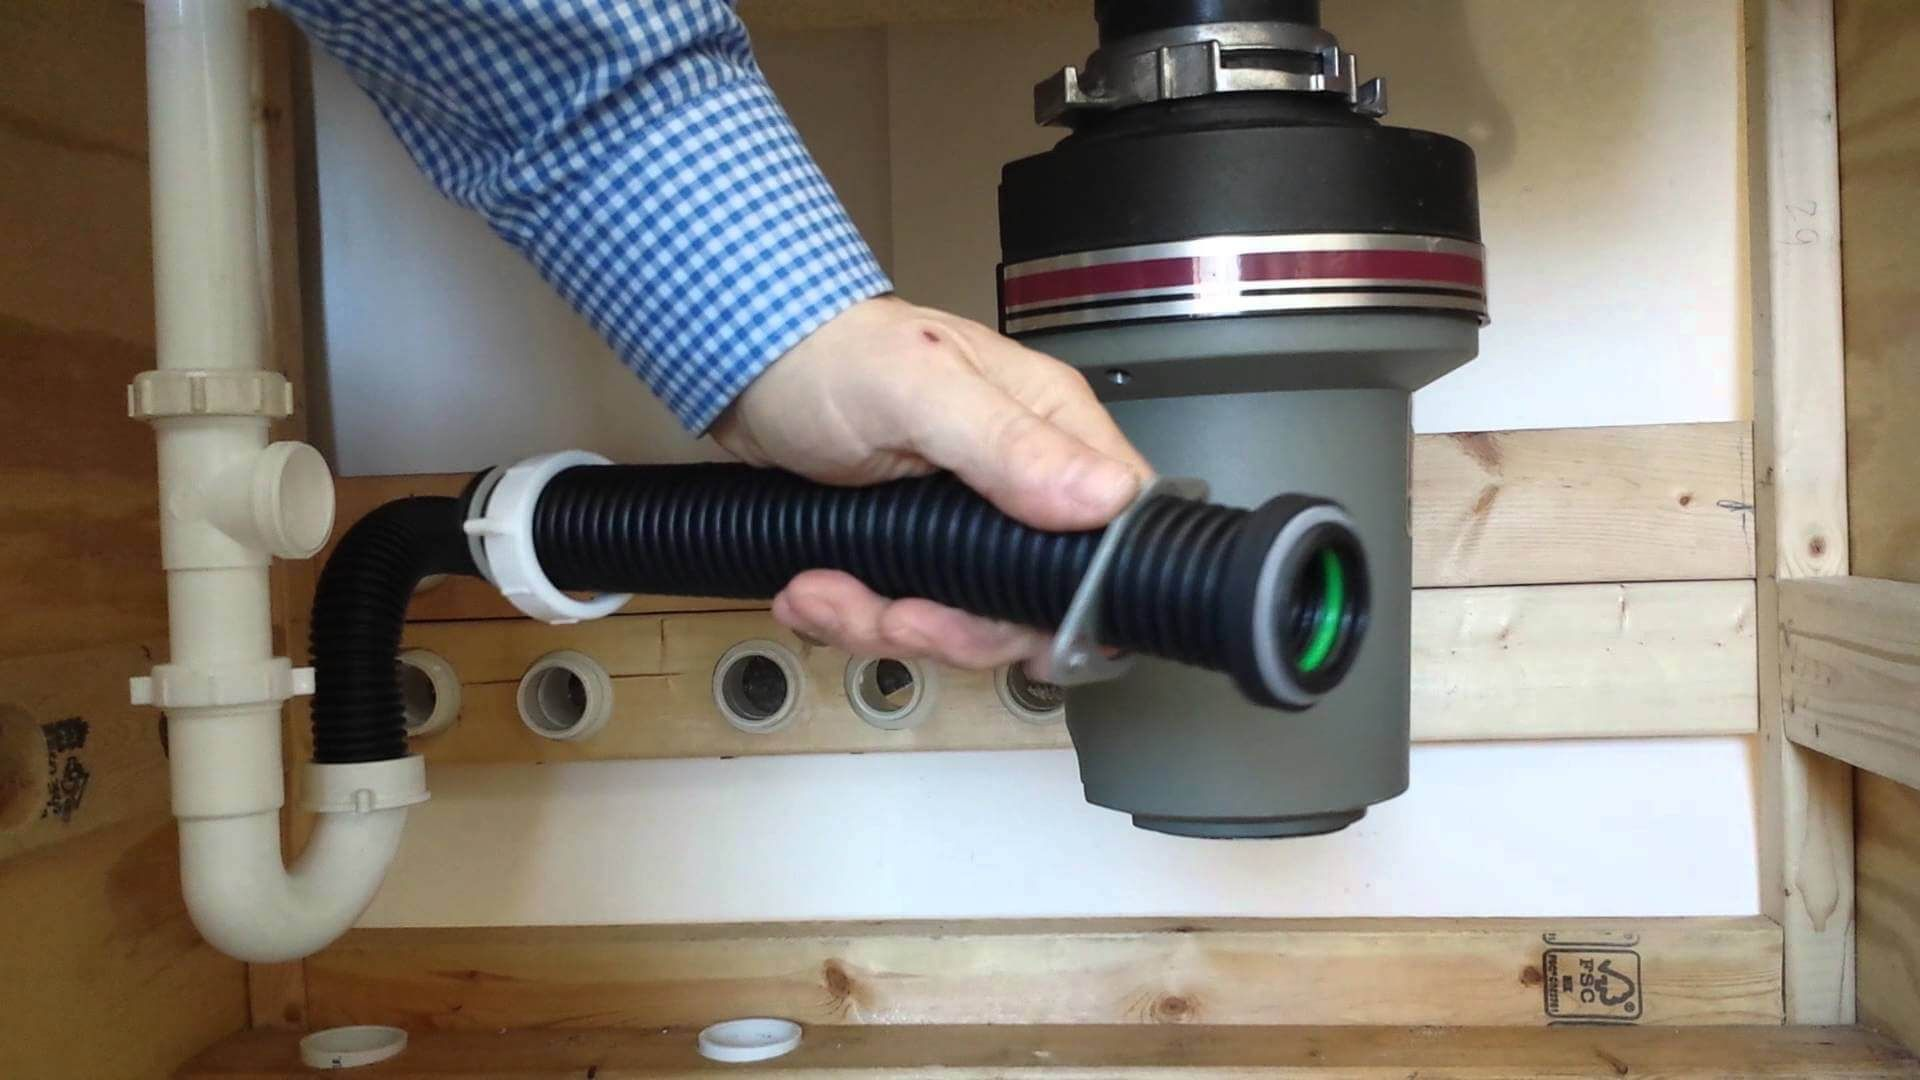 Pin by Make The Simple on Best Garbage Disposal Easy, Simple